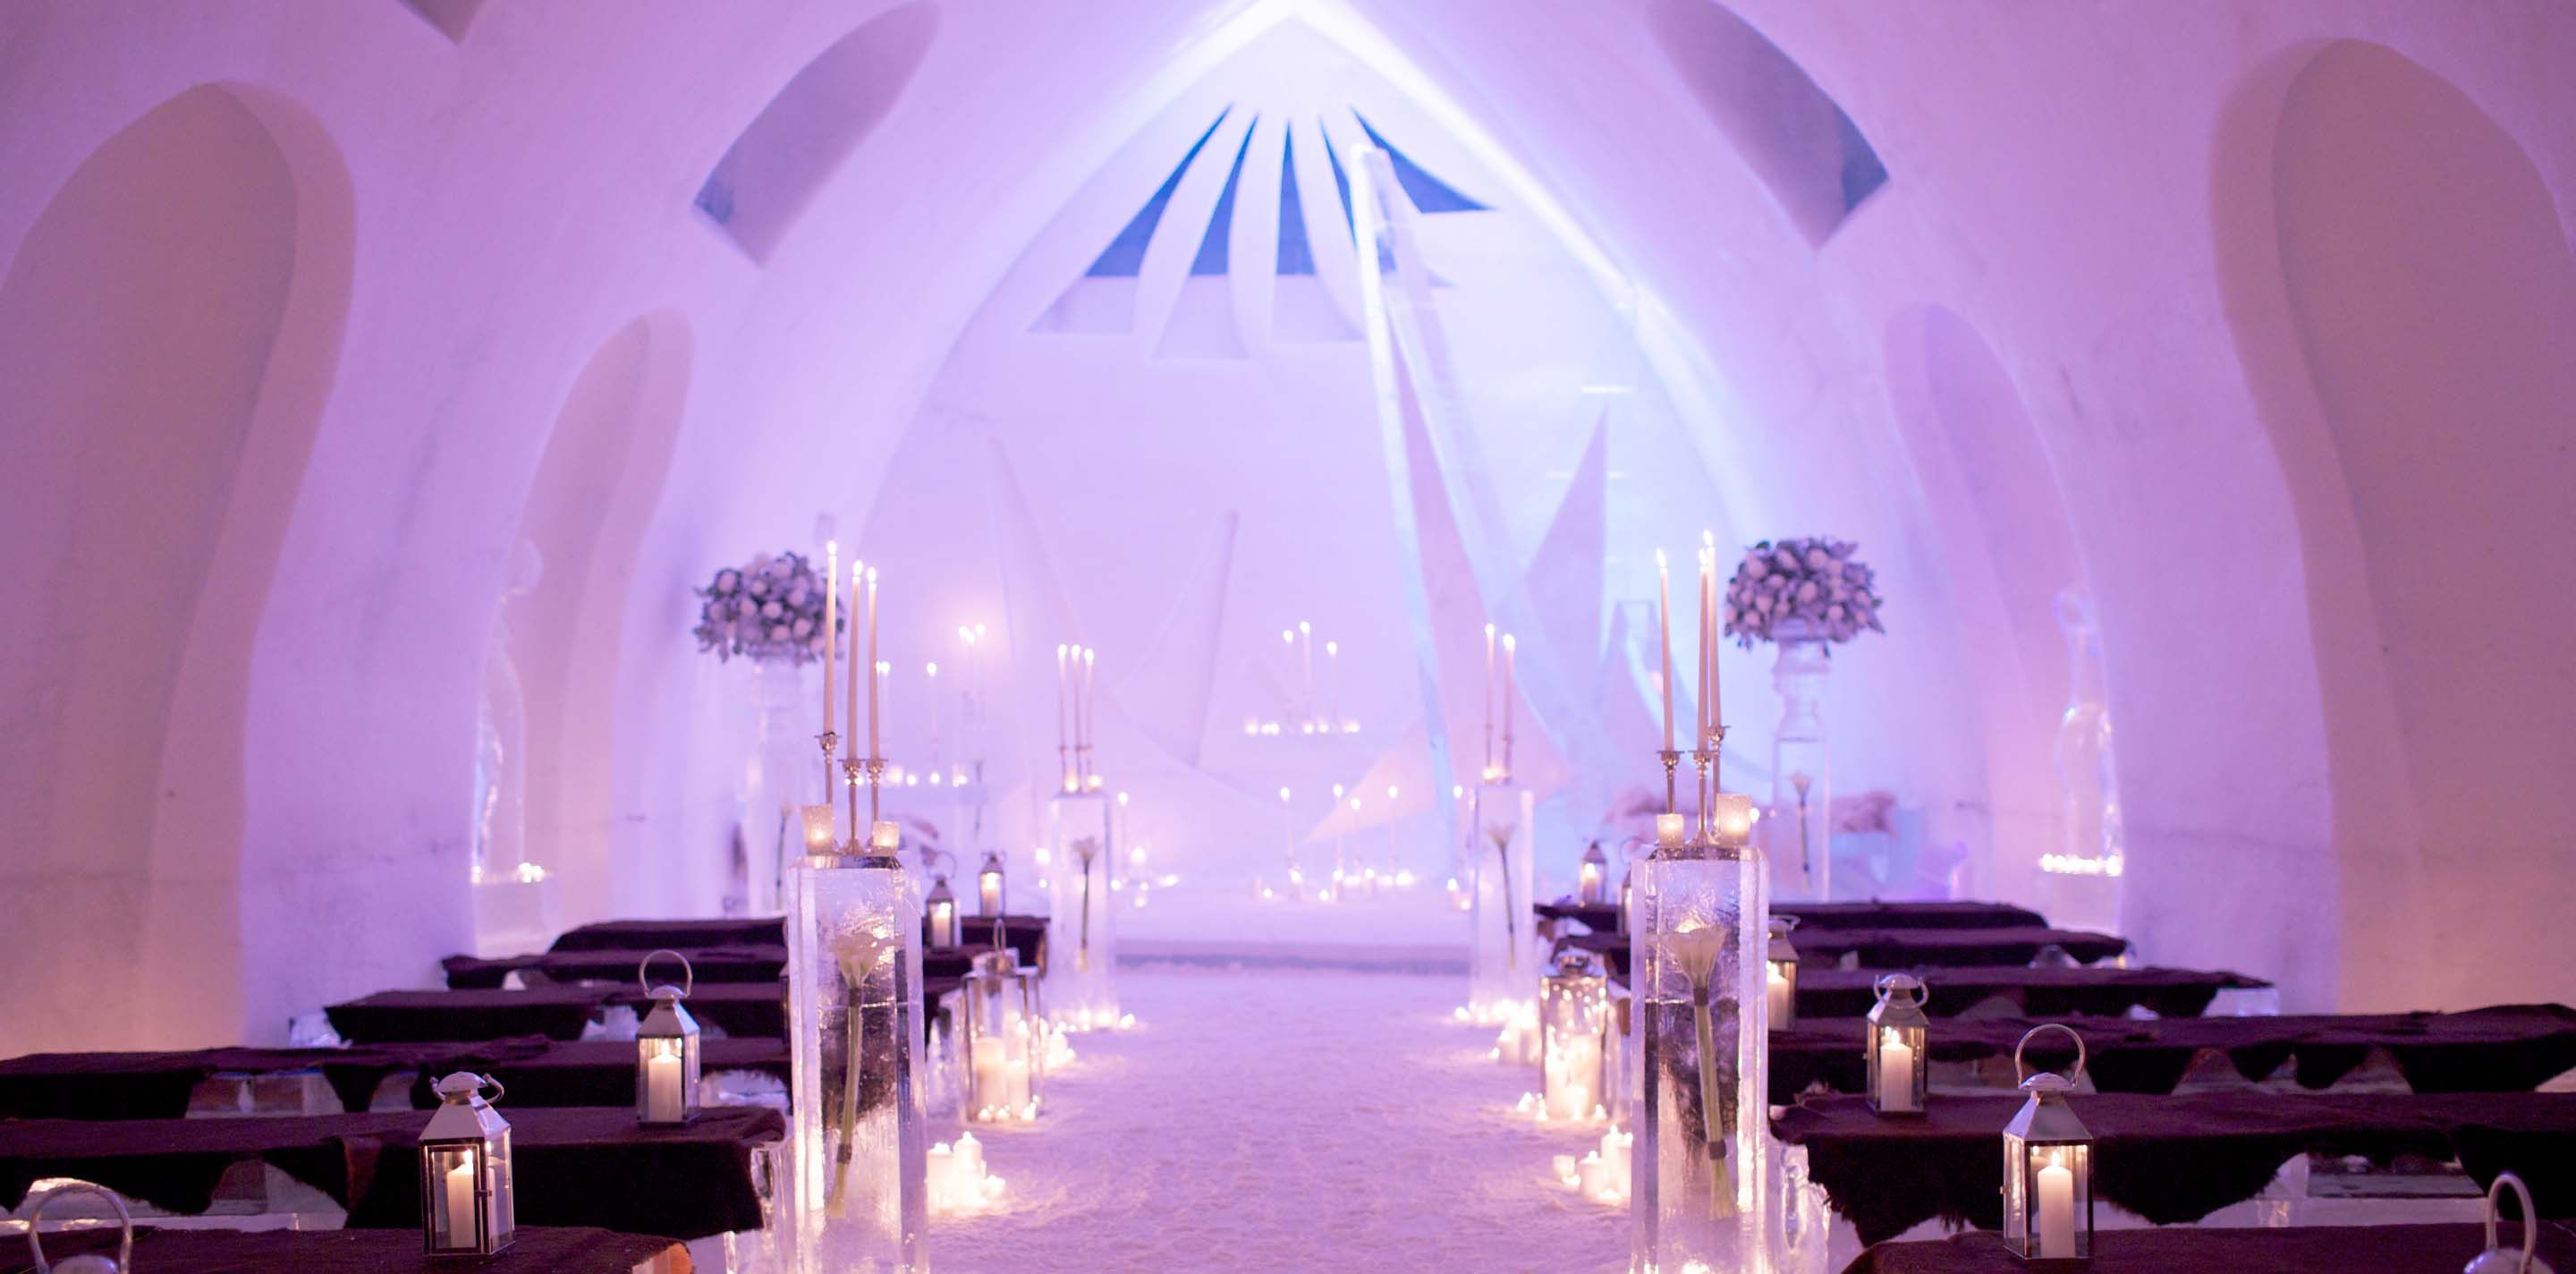 With Its 44 Rooms And Theme Suites Chapel Grand Slide The Hôtel De Glace Will Transport You Into A Fascinating World Entirely Made Of Snow Ice